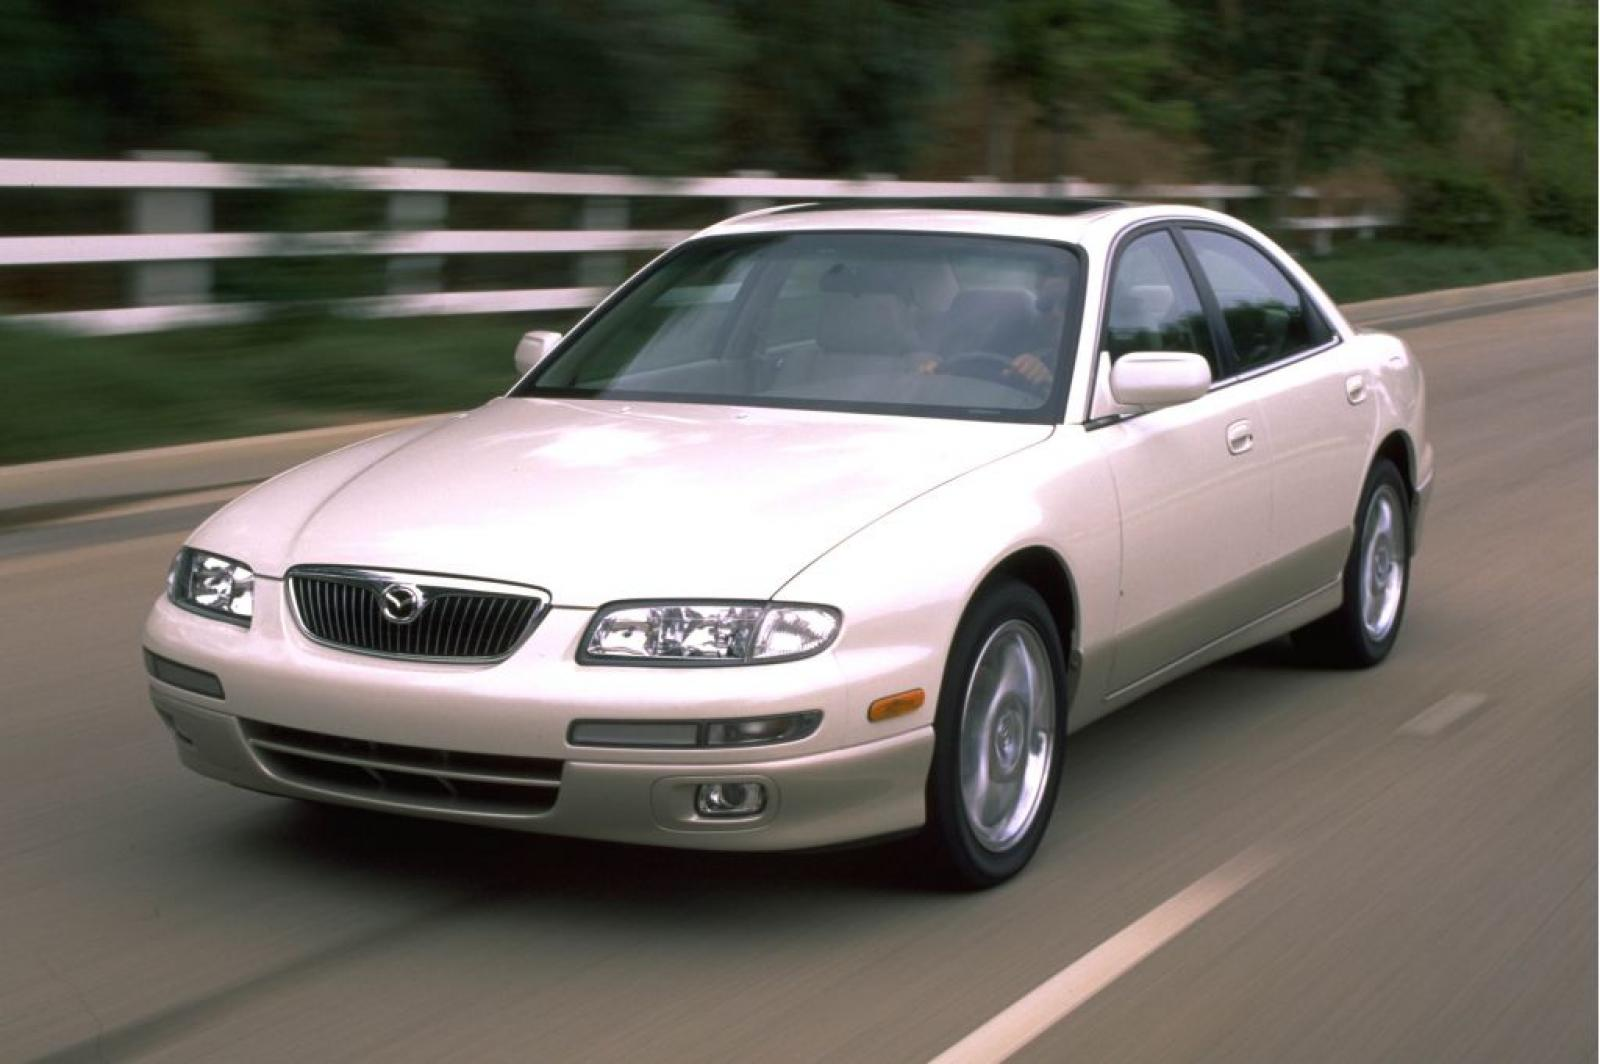 1999 mazda millenia - information and photos - zombiedrive